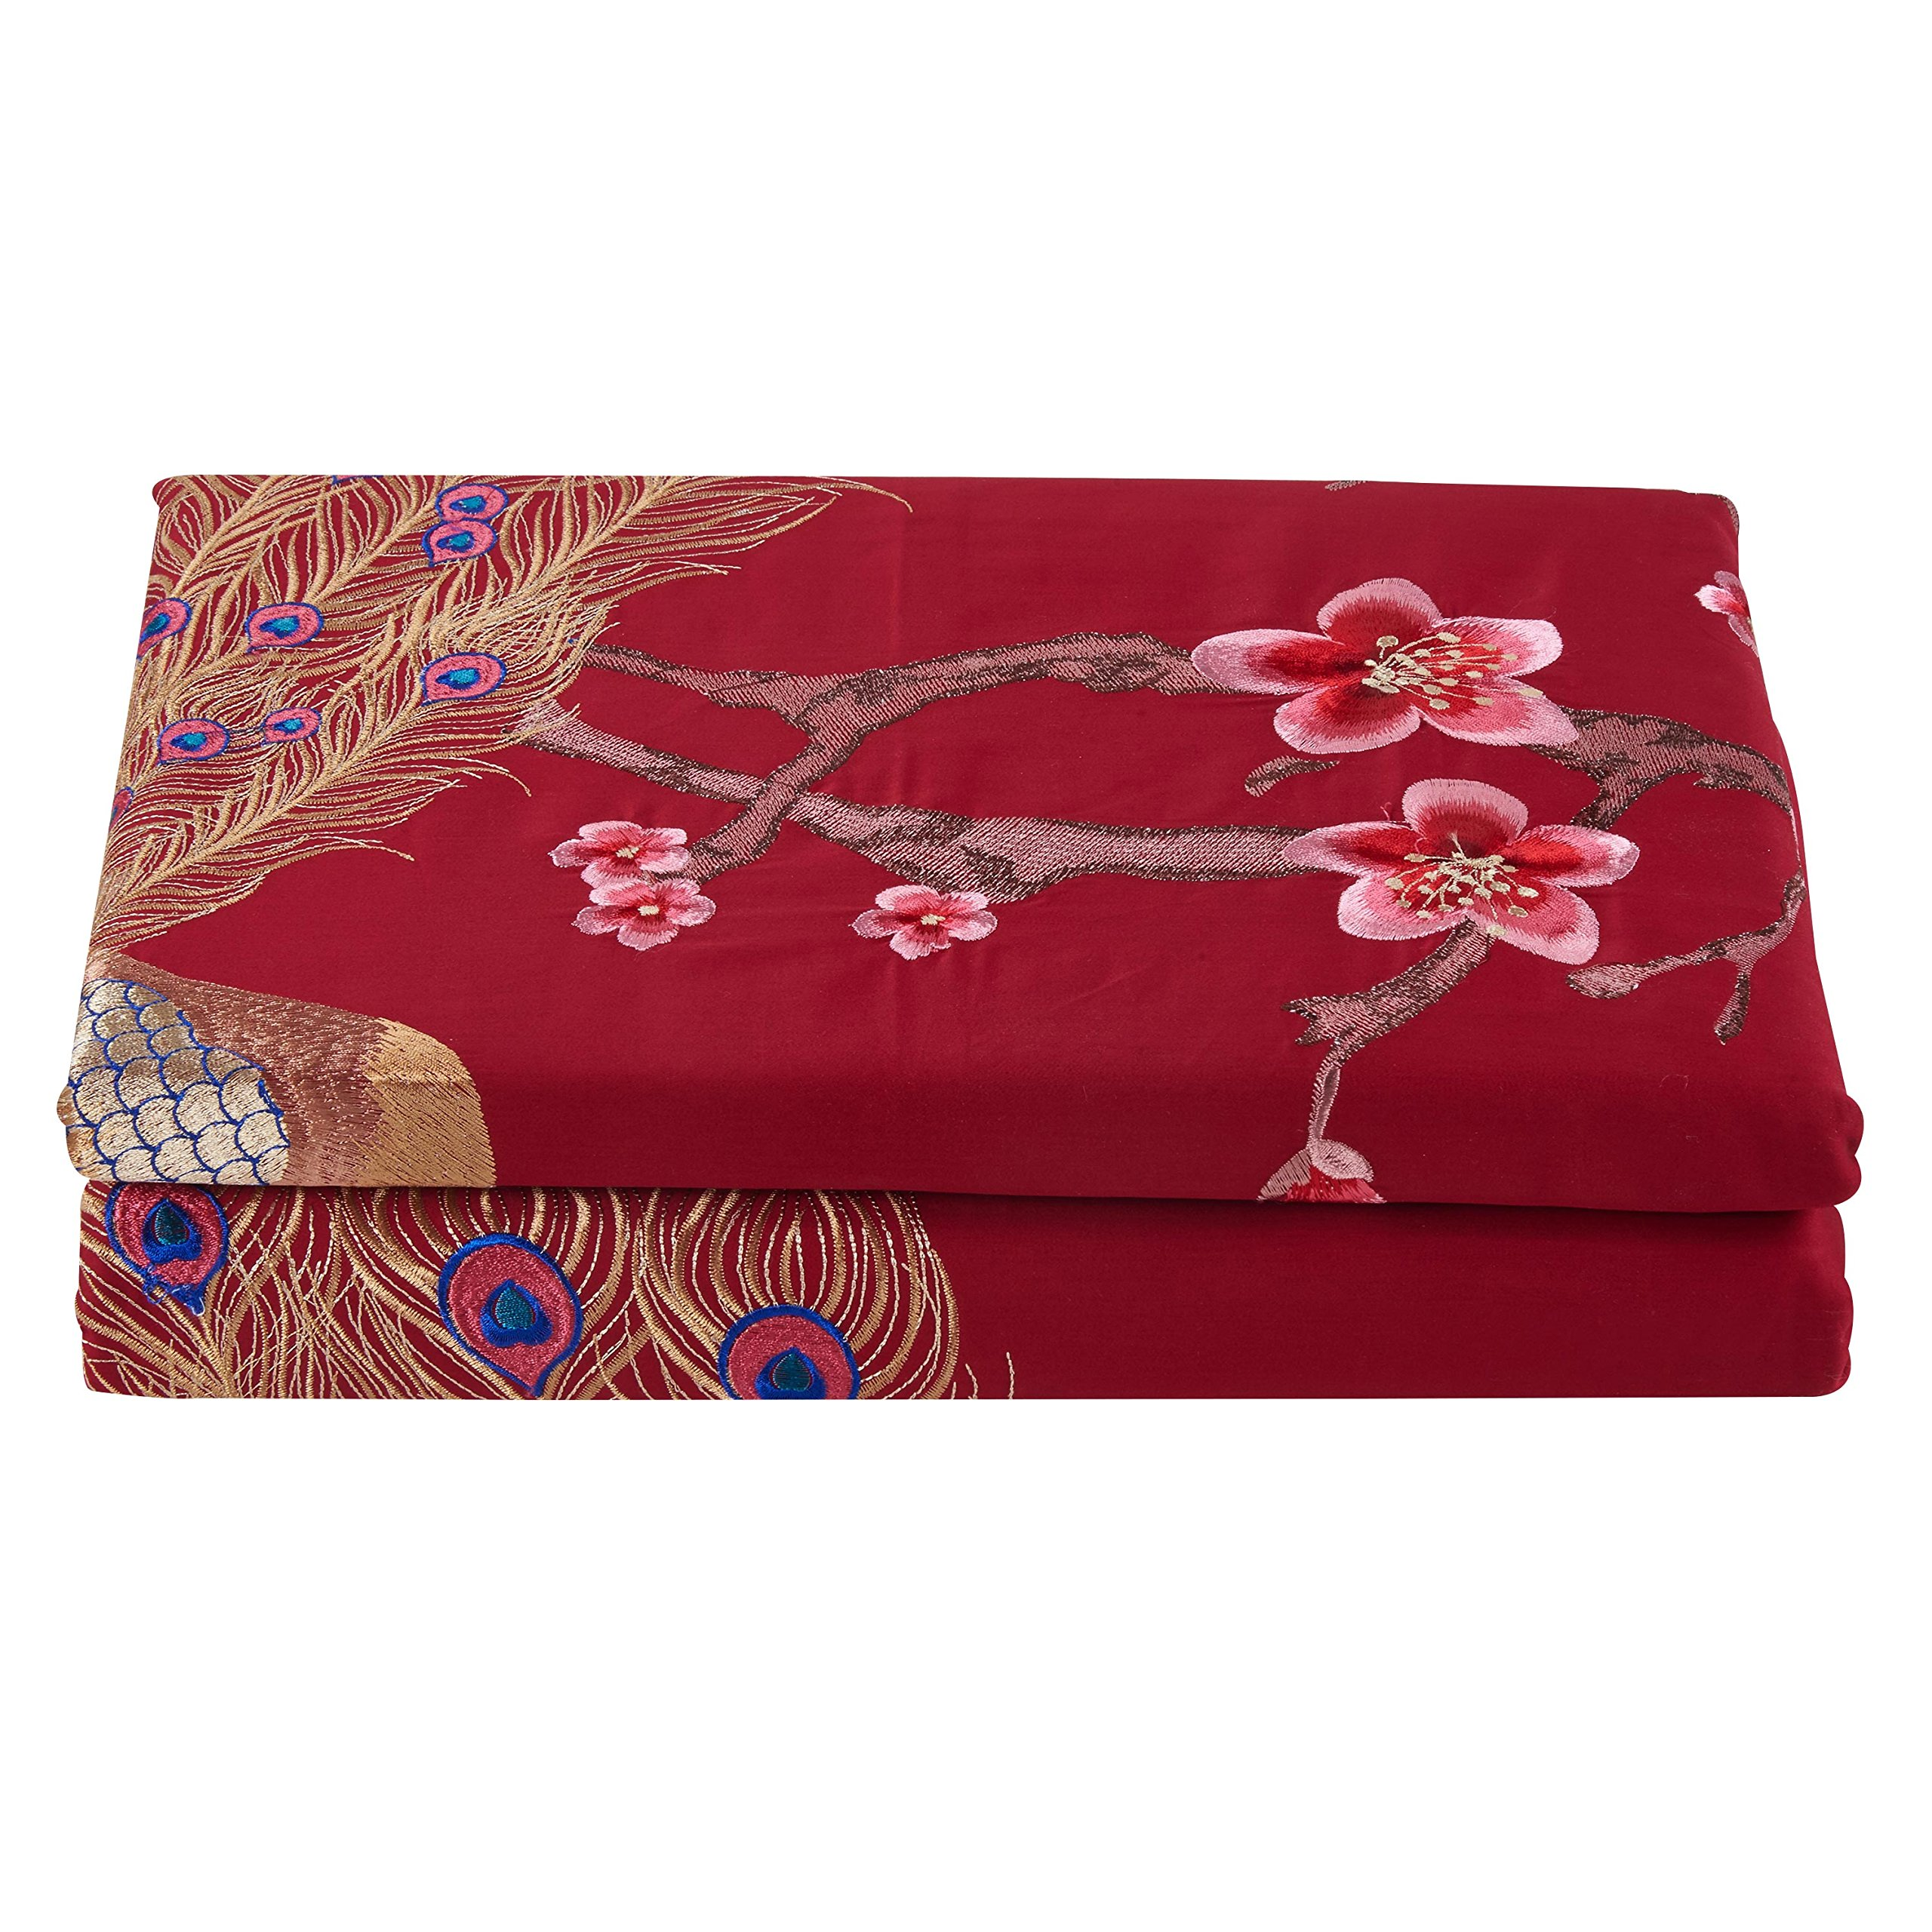 FlyWingToWing Wedding Bedding Embroidered Peacock Duvet Cover Set Flat Sheet Pillow Cover Full Red by Comforbed